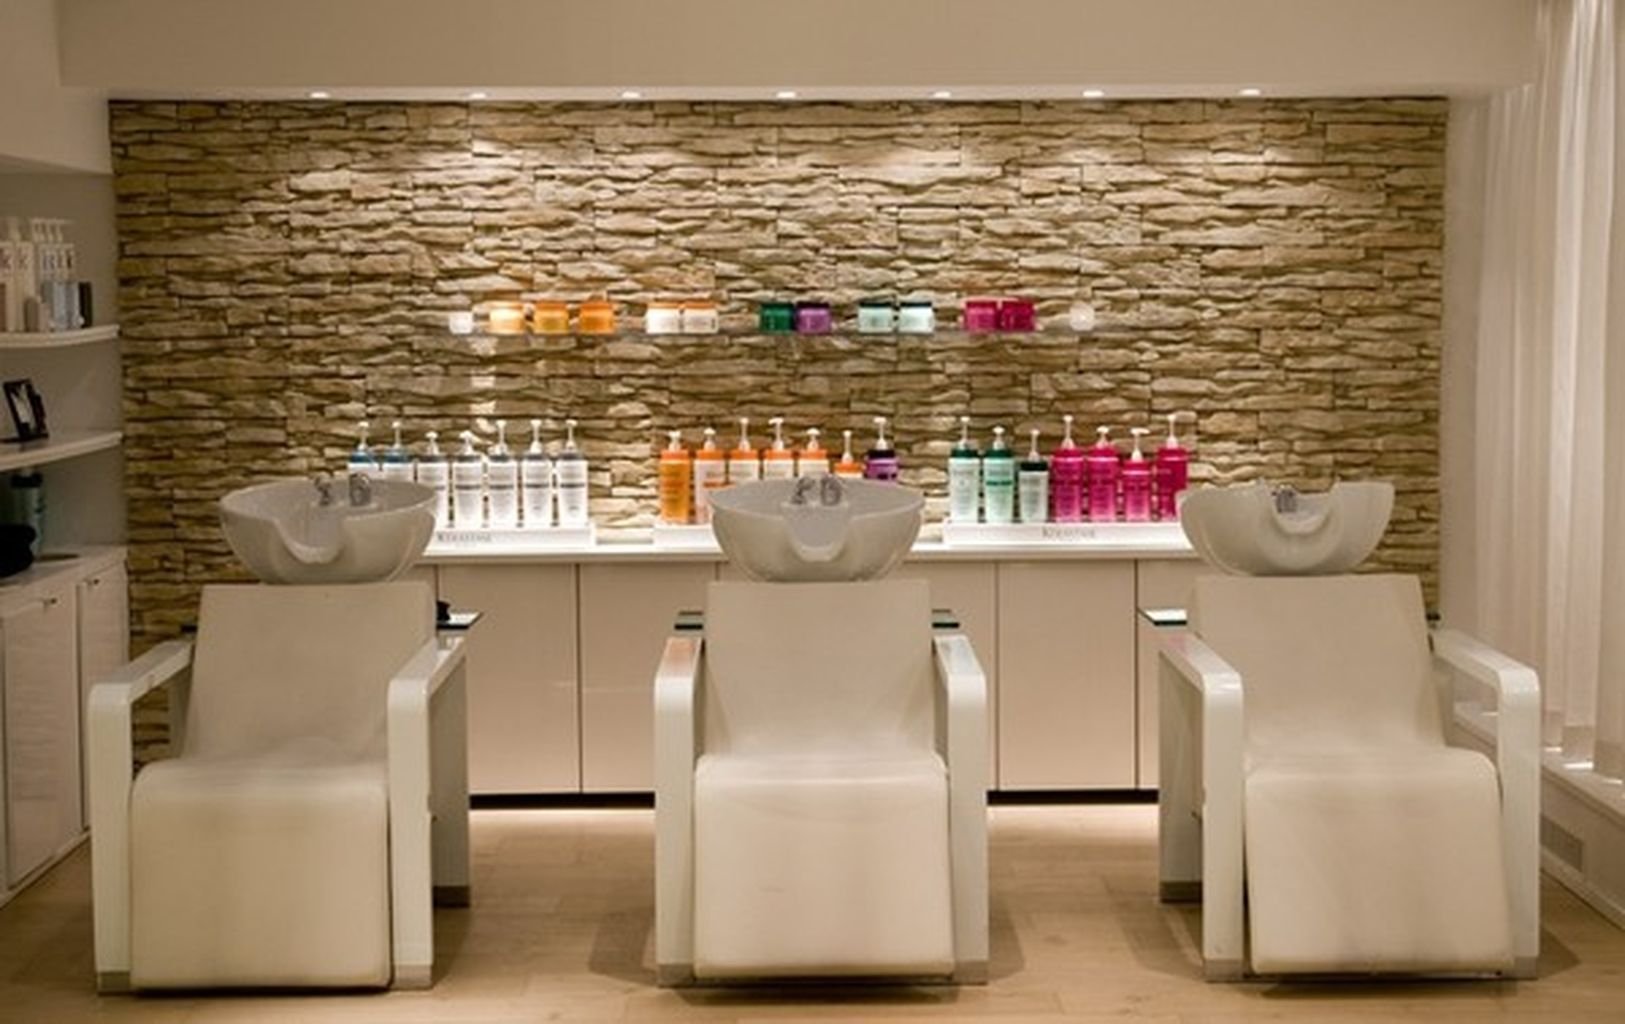 50 Hair Salon Ideas With Images Hair Salon Decor Hair Salon